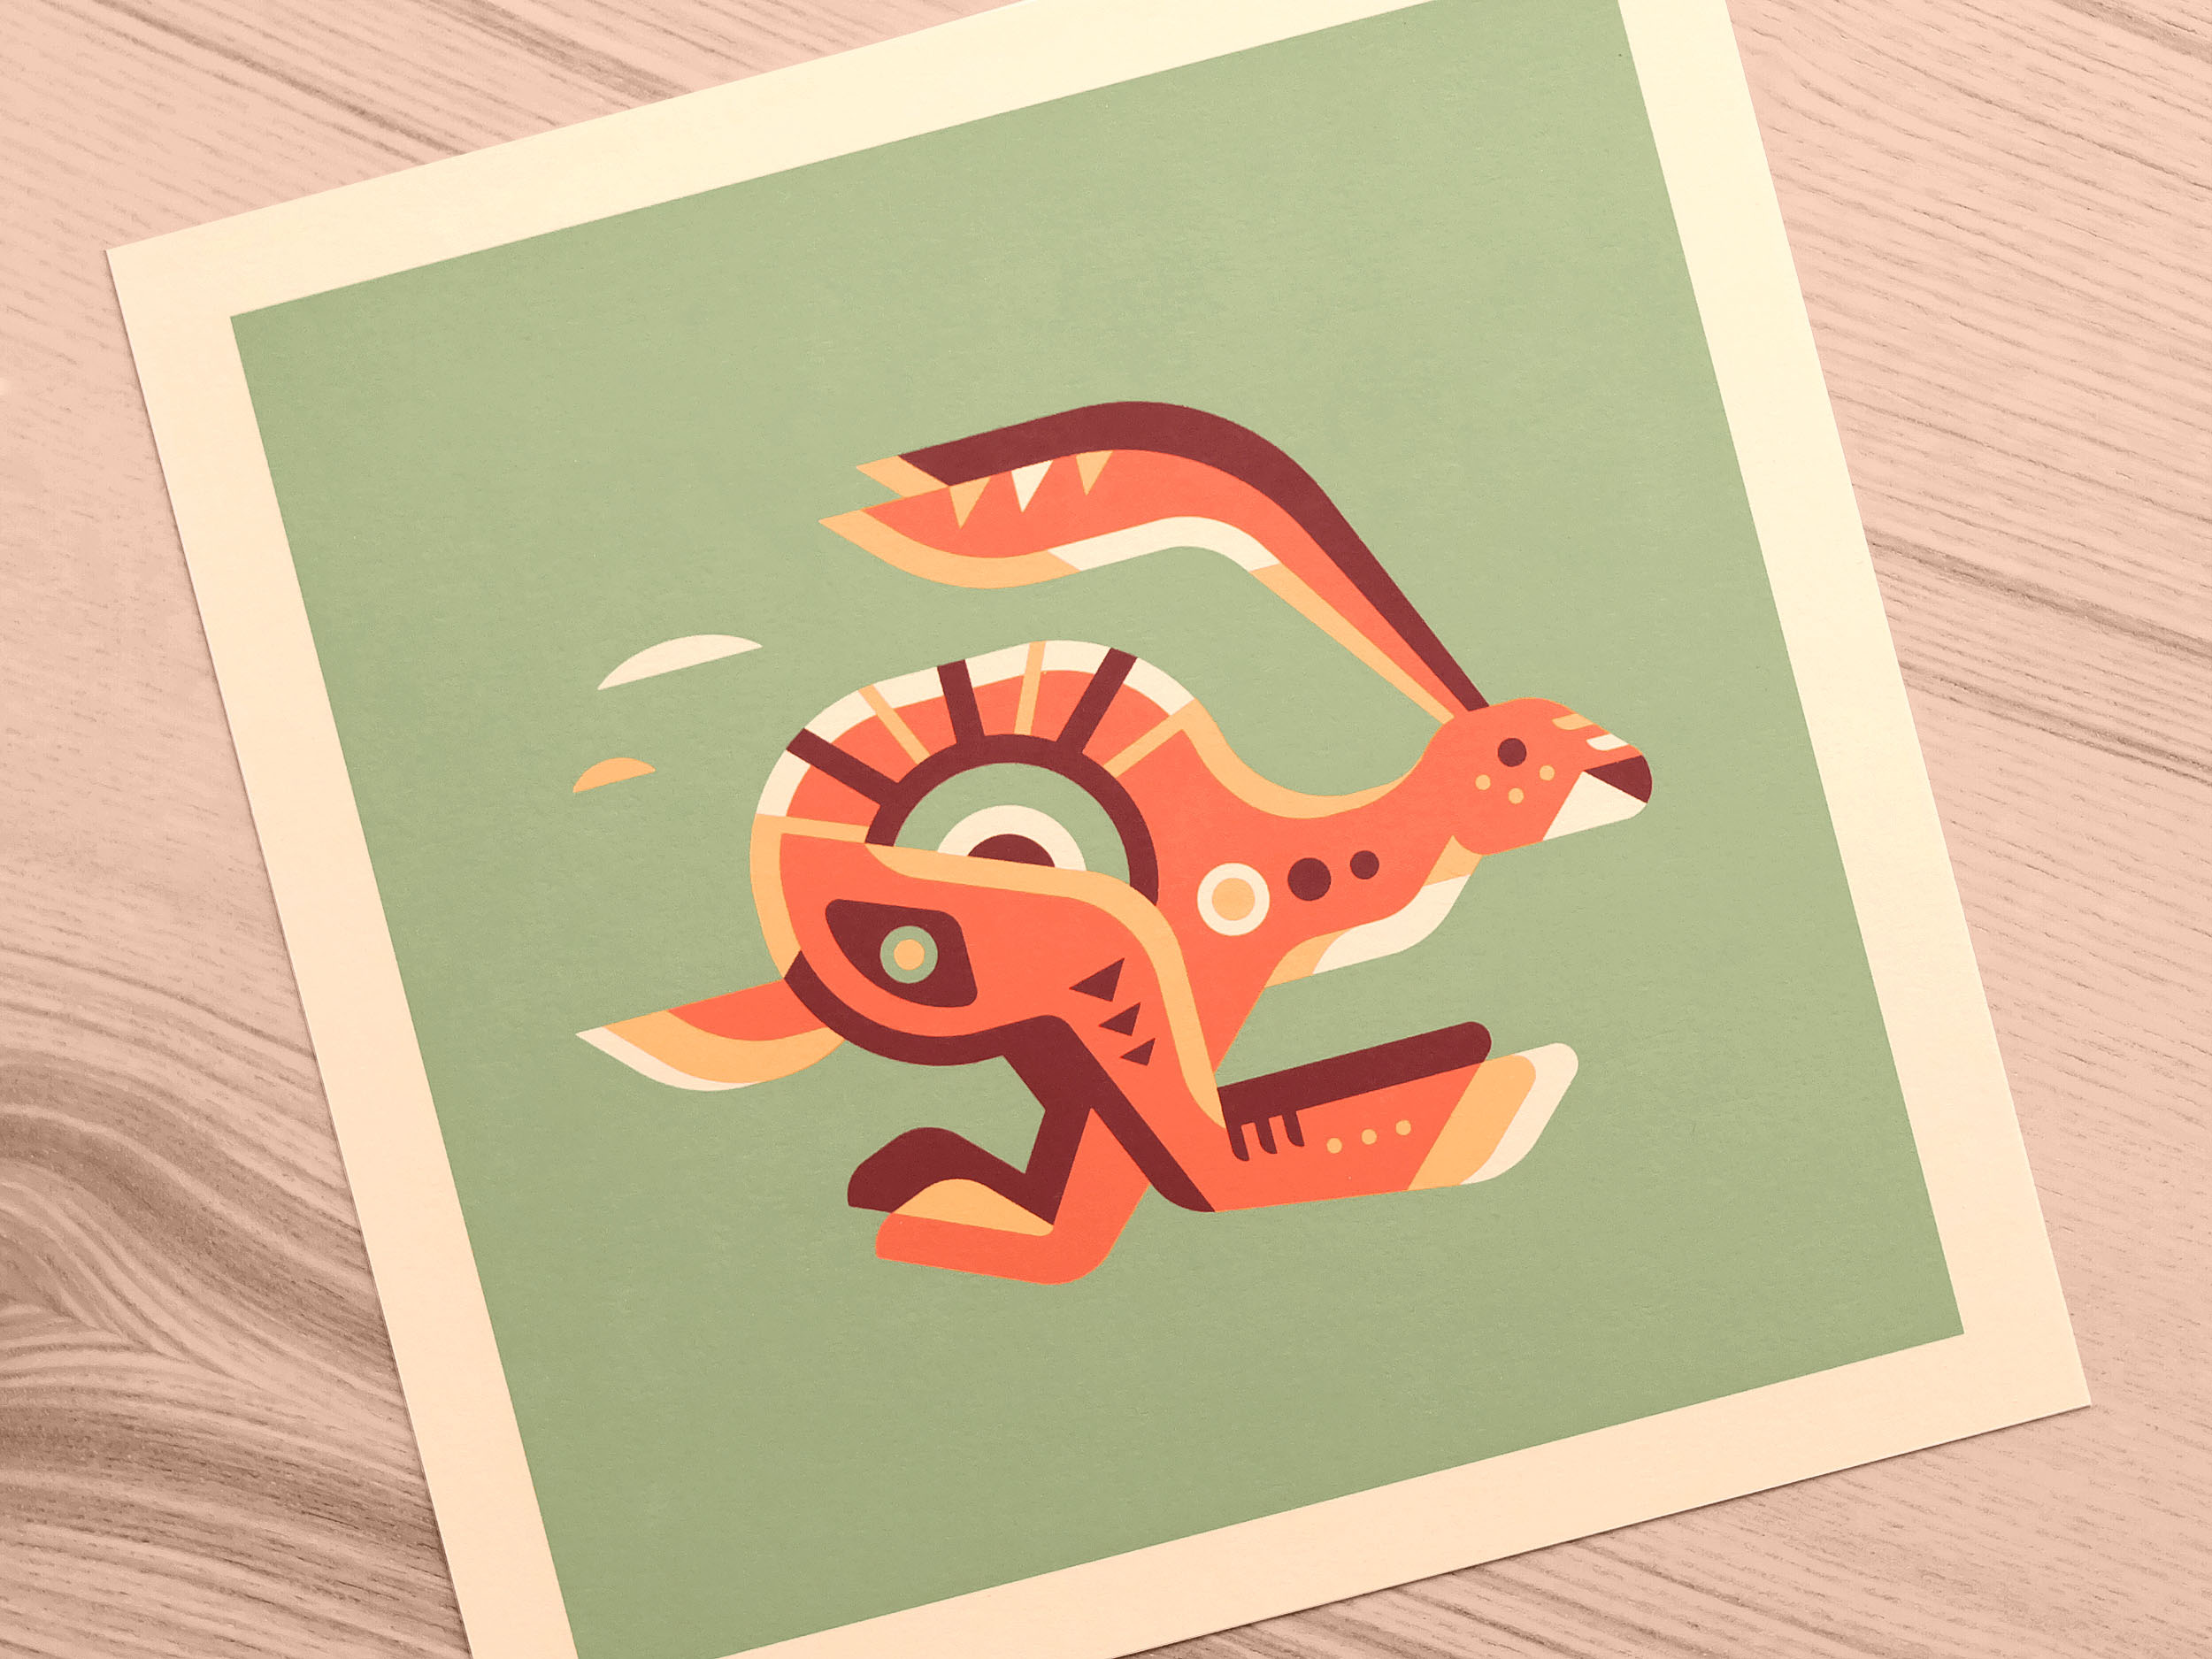 Jackrabbit totem print photo by Matt Anderson and Canopy Design. Limited color, geometric pattern illustration with Navajo southwest art style.